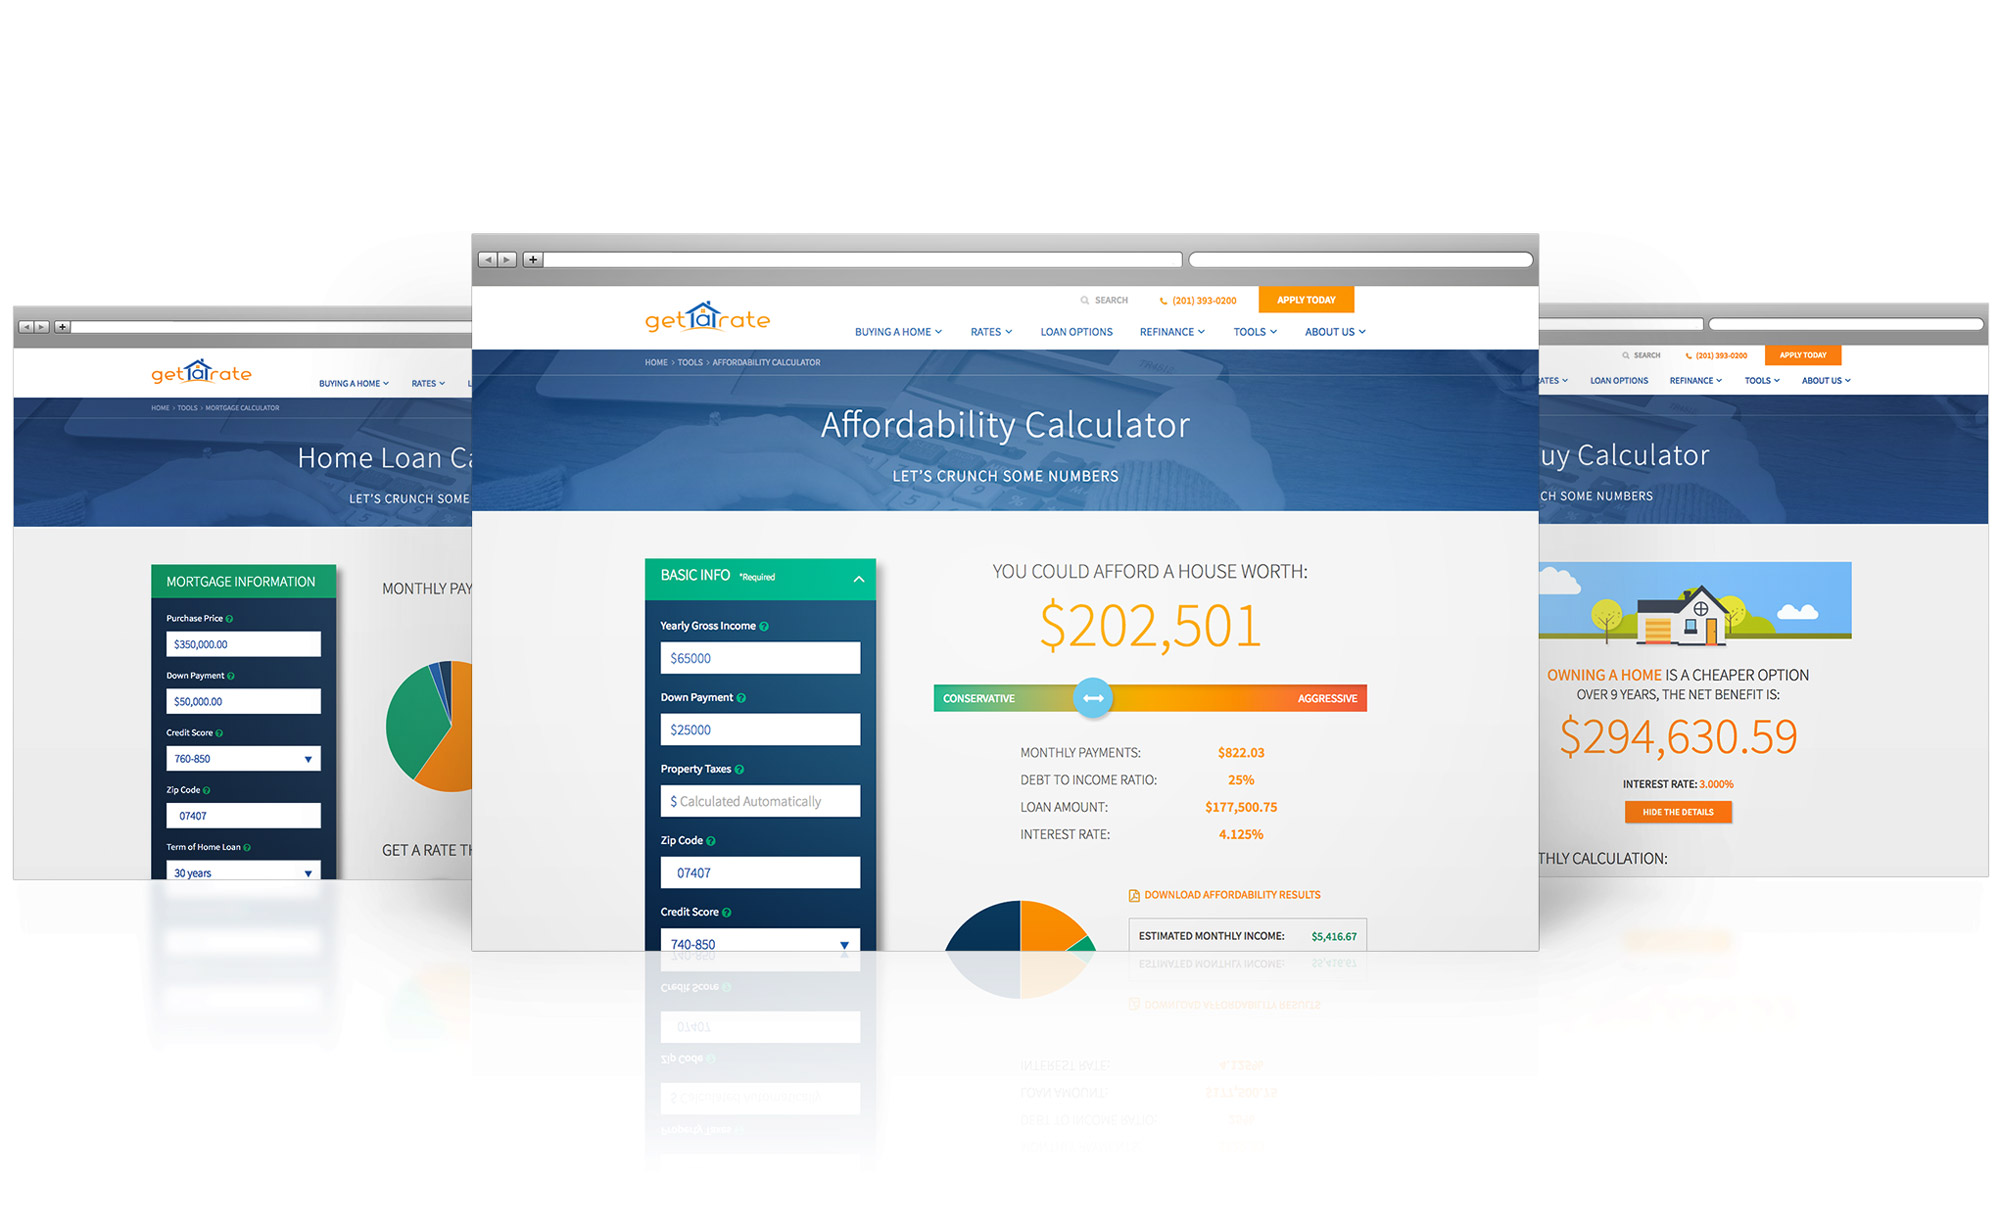 Get A Rate image: Affordability Calculator